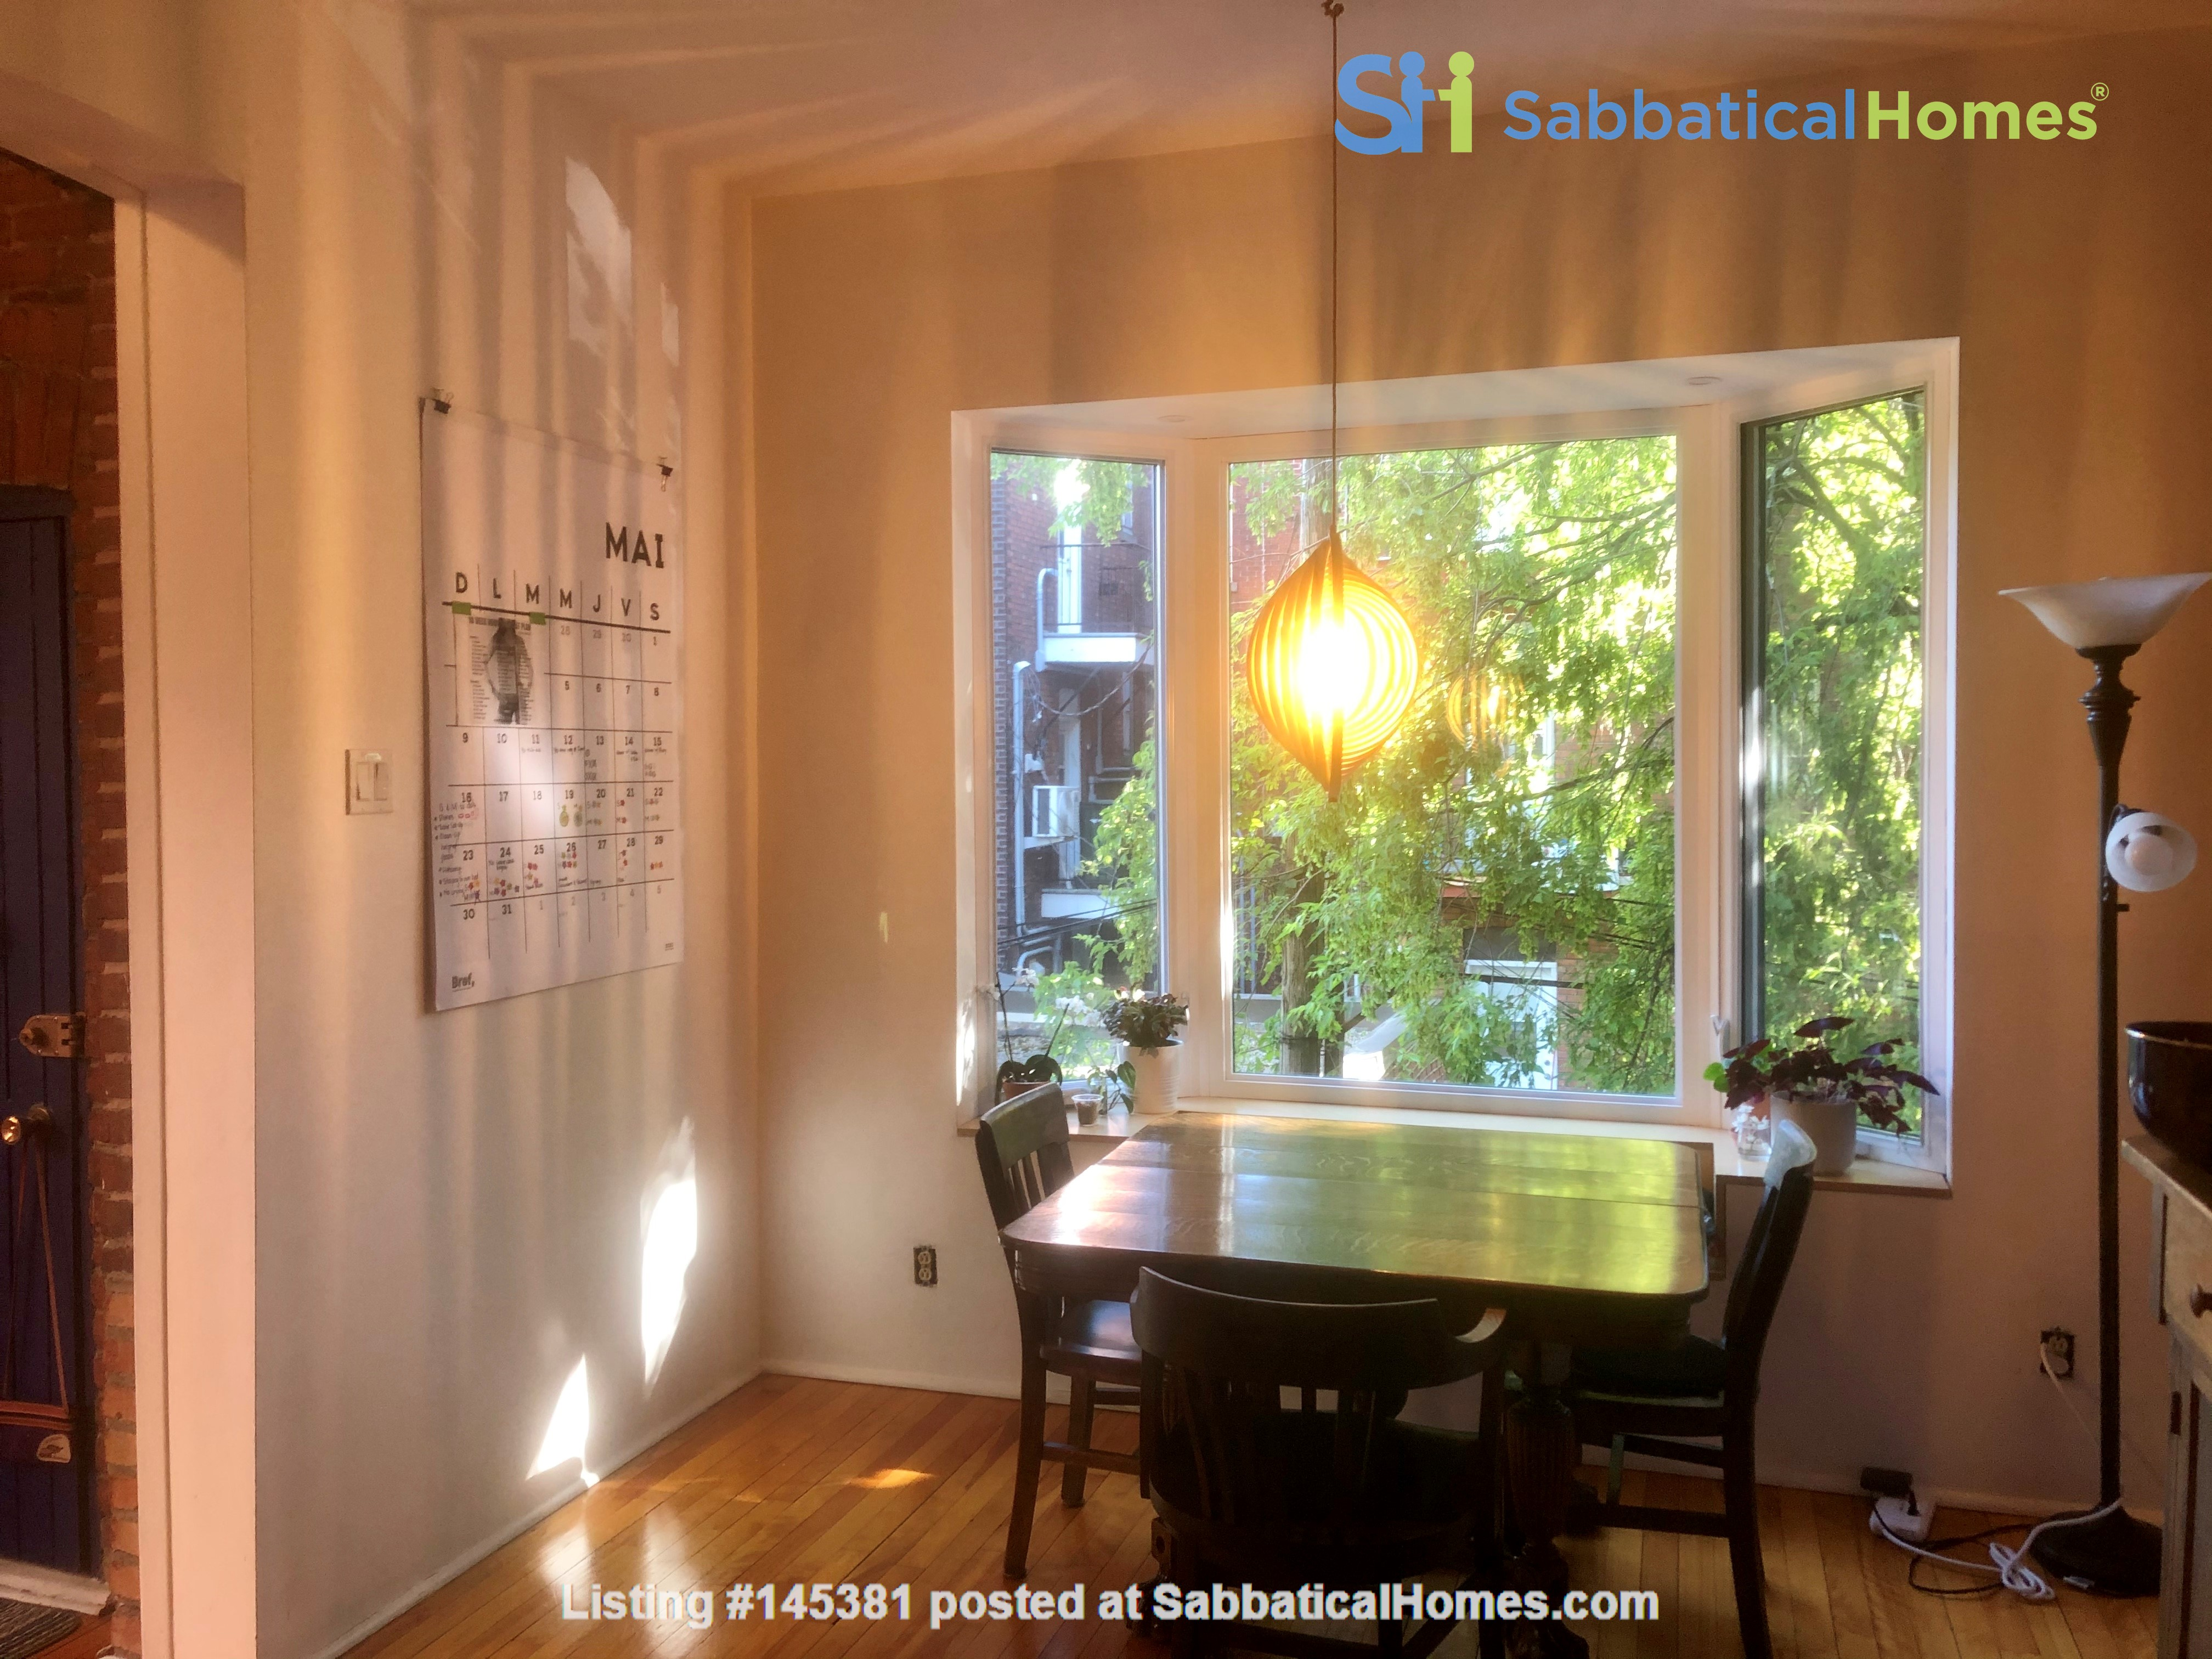 Furnished 2 BR Apartment for rent in Outremont - near Mile-End! Home Rental in Montréal, Québec, Canada 8